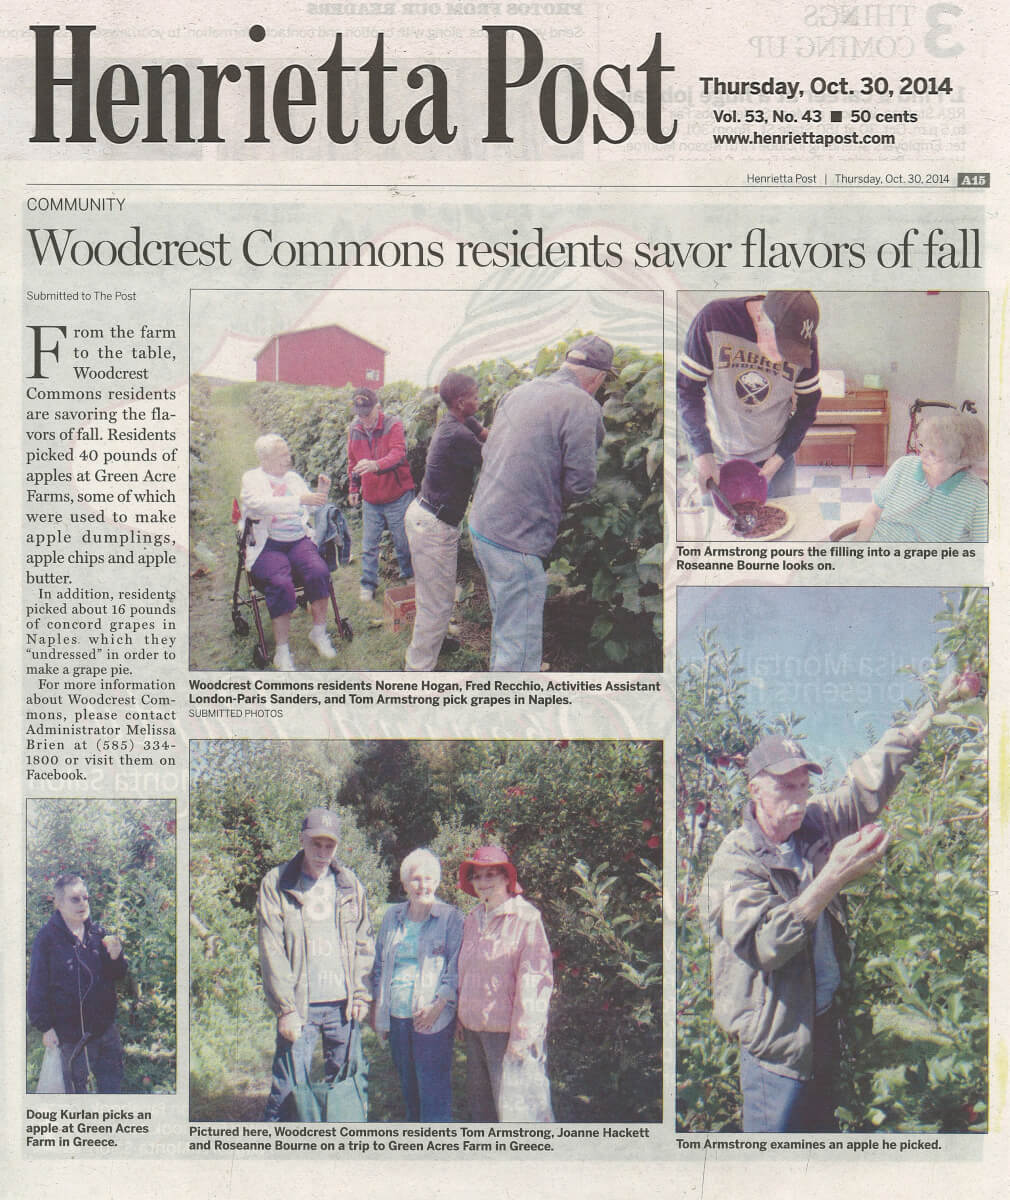 Woodcrest Commons' Residents Savor the Flavors of Fall article in the Gates Chili Post October 30, 2014